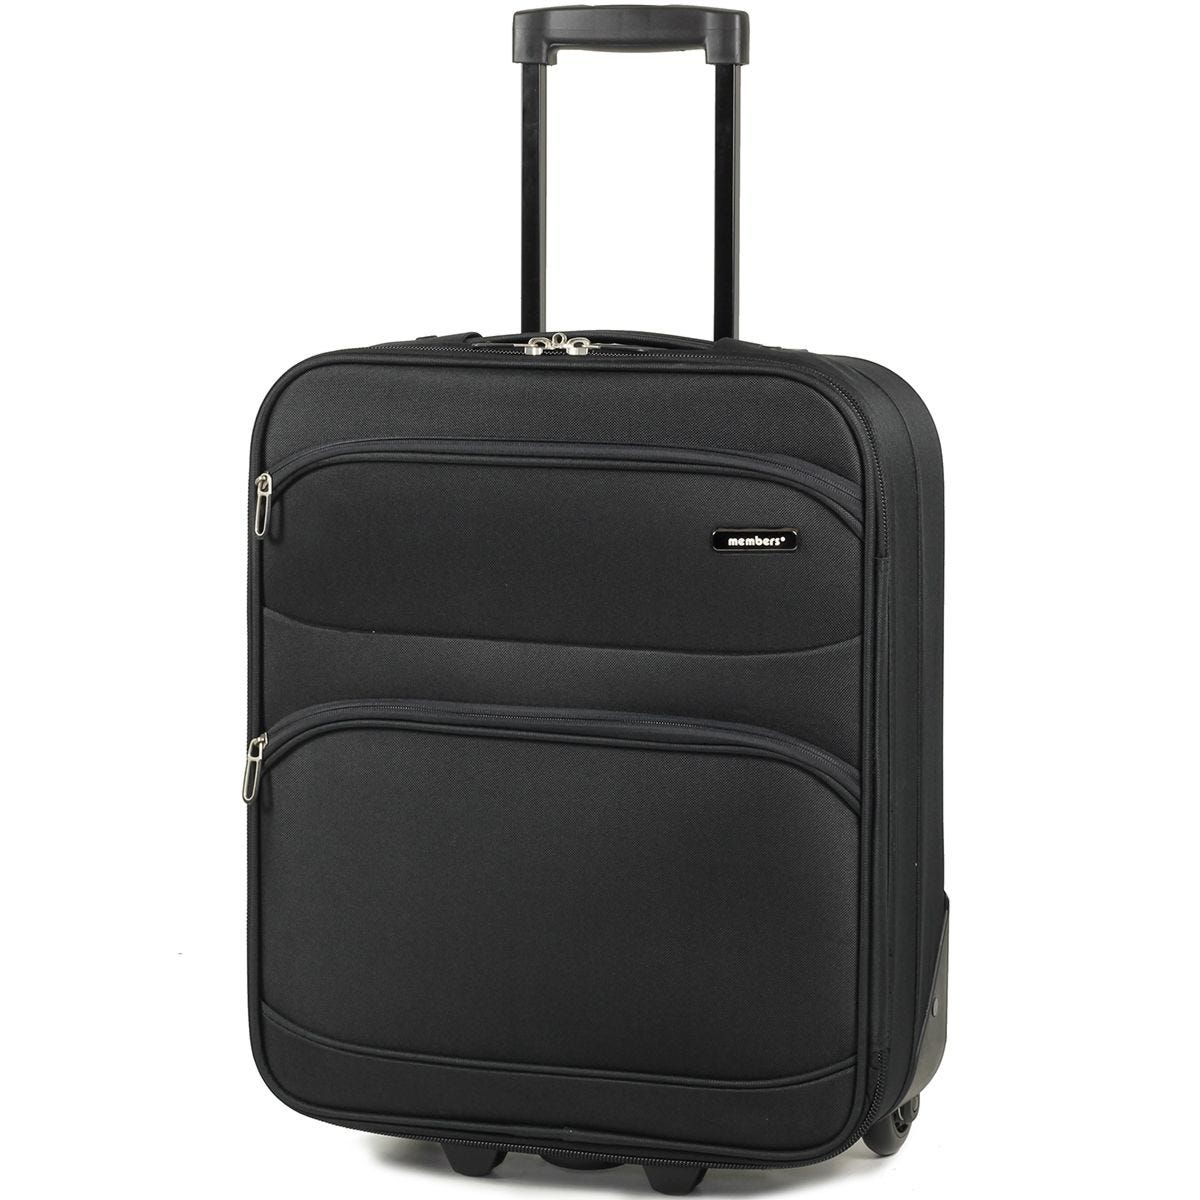 Members Topaz 55cm Carry-on Lightweight Two Wheel Trolley Suitcase - Black